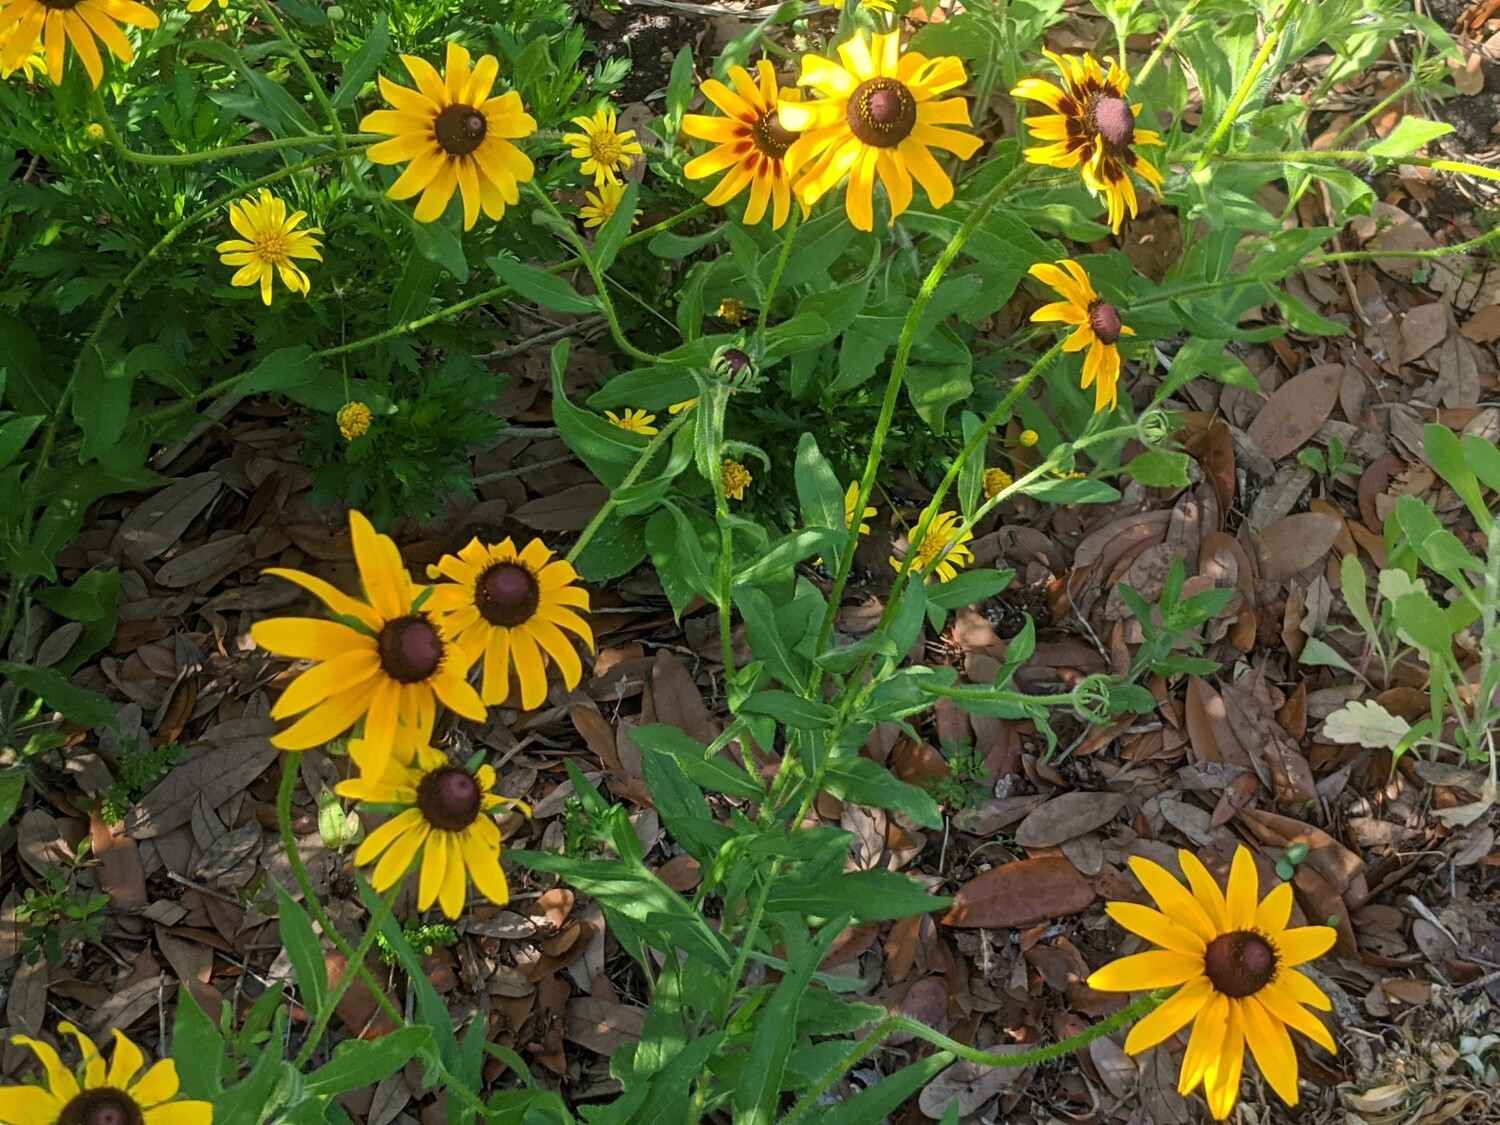 1 Gallon Potted Black-Eyed Susan Plant